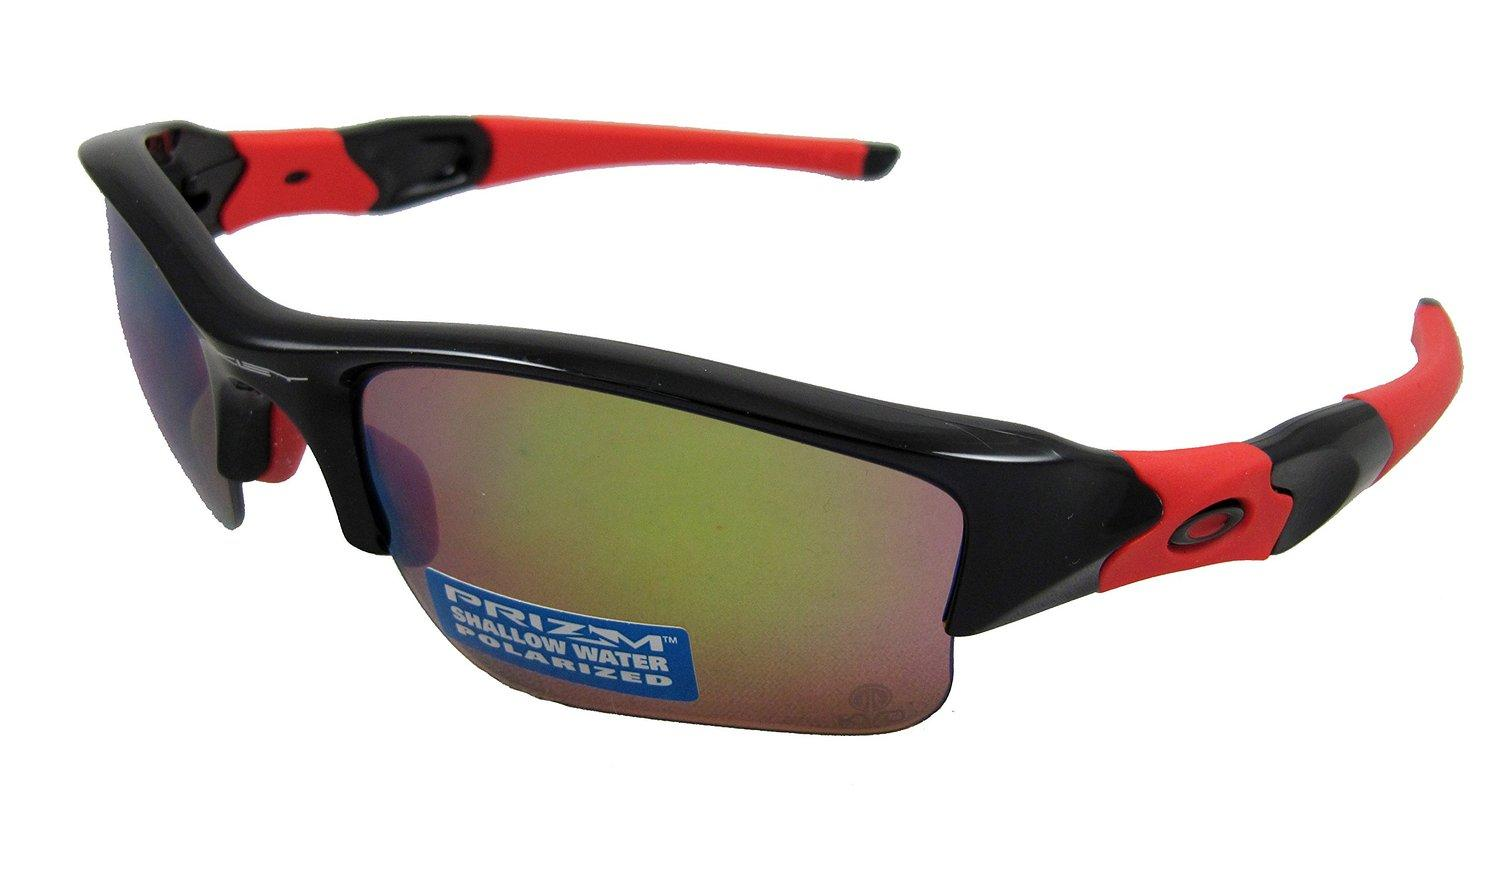 f36cea0665 Oakley Flak Sunglasses Amazon « Heritage Malta